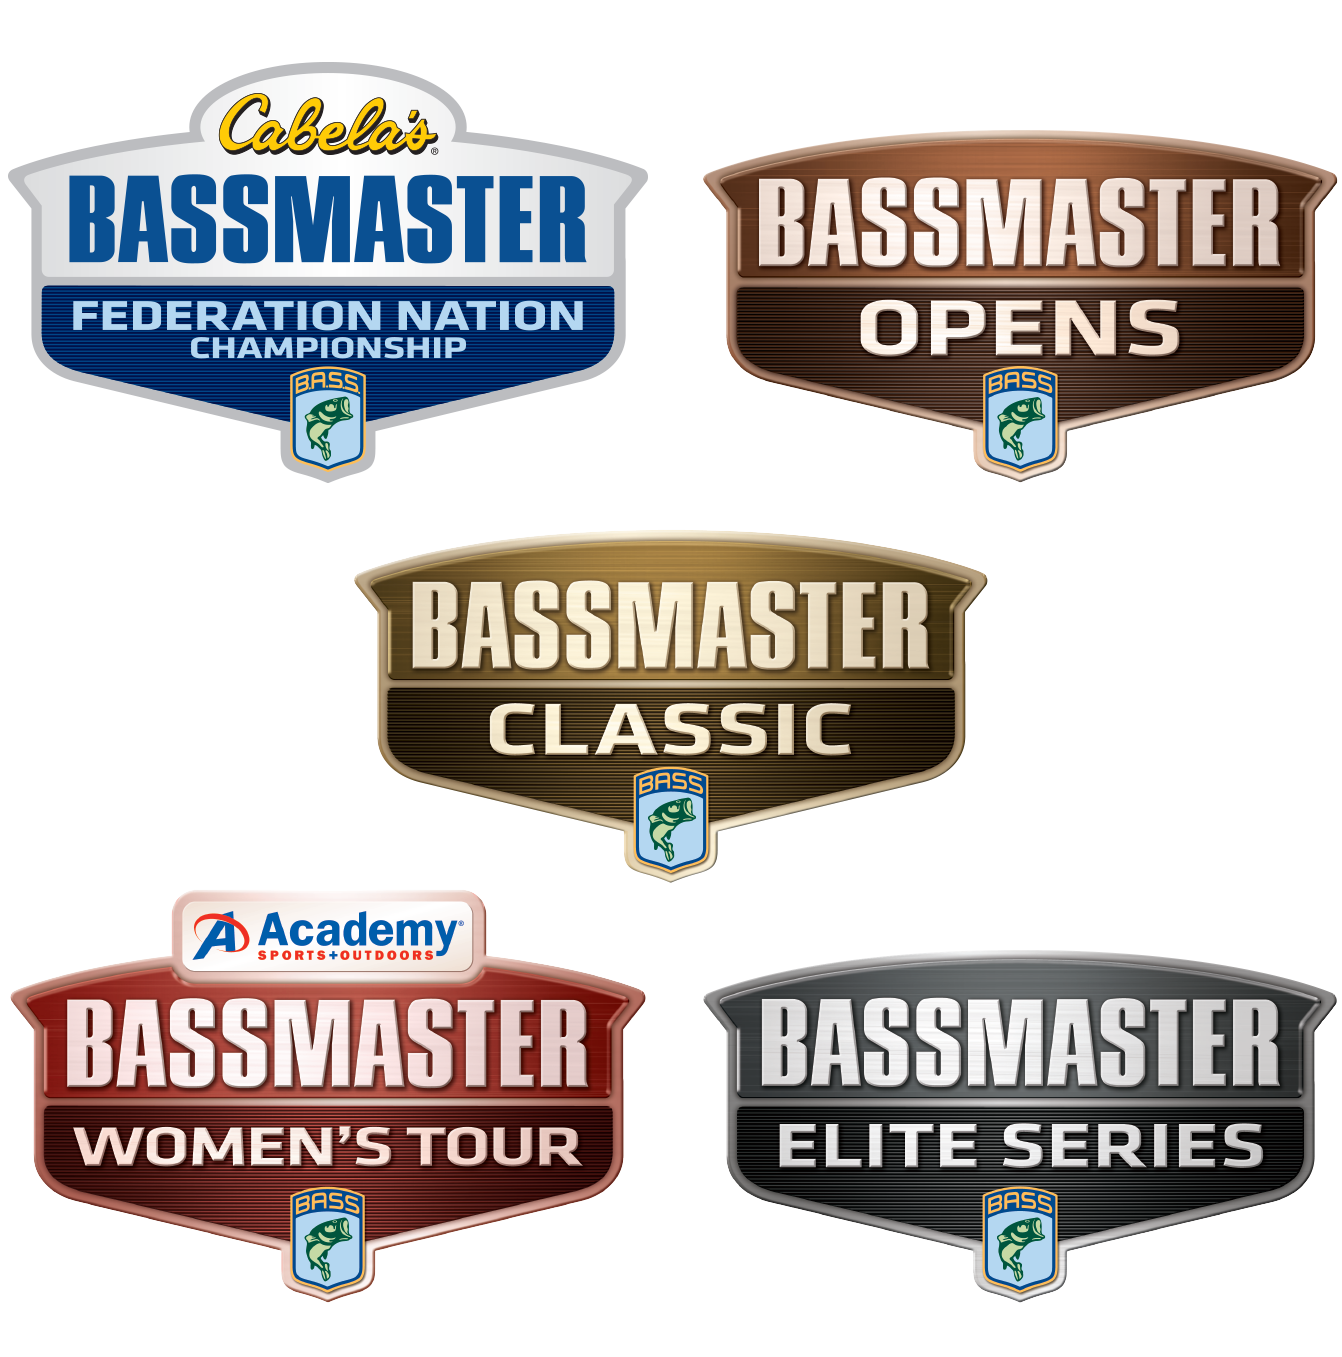 Bassmaster Tournament marks after brand refresh.